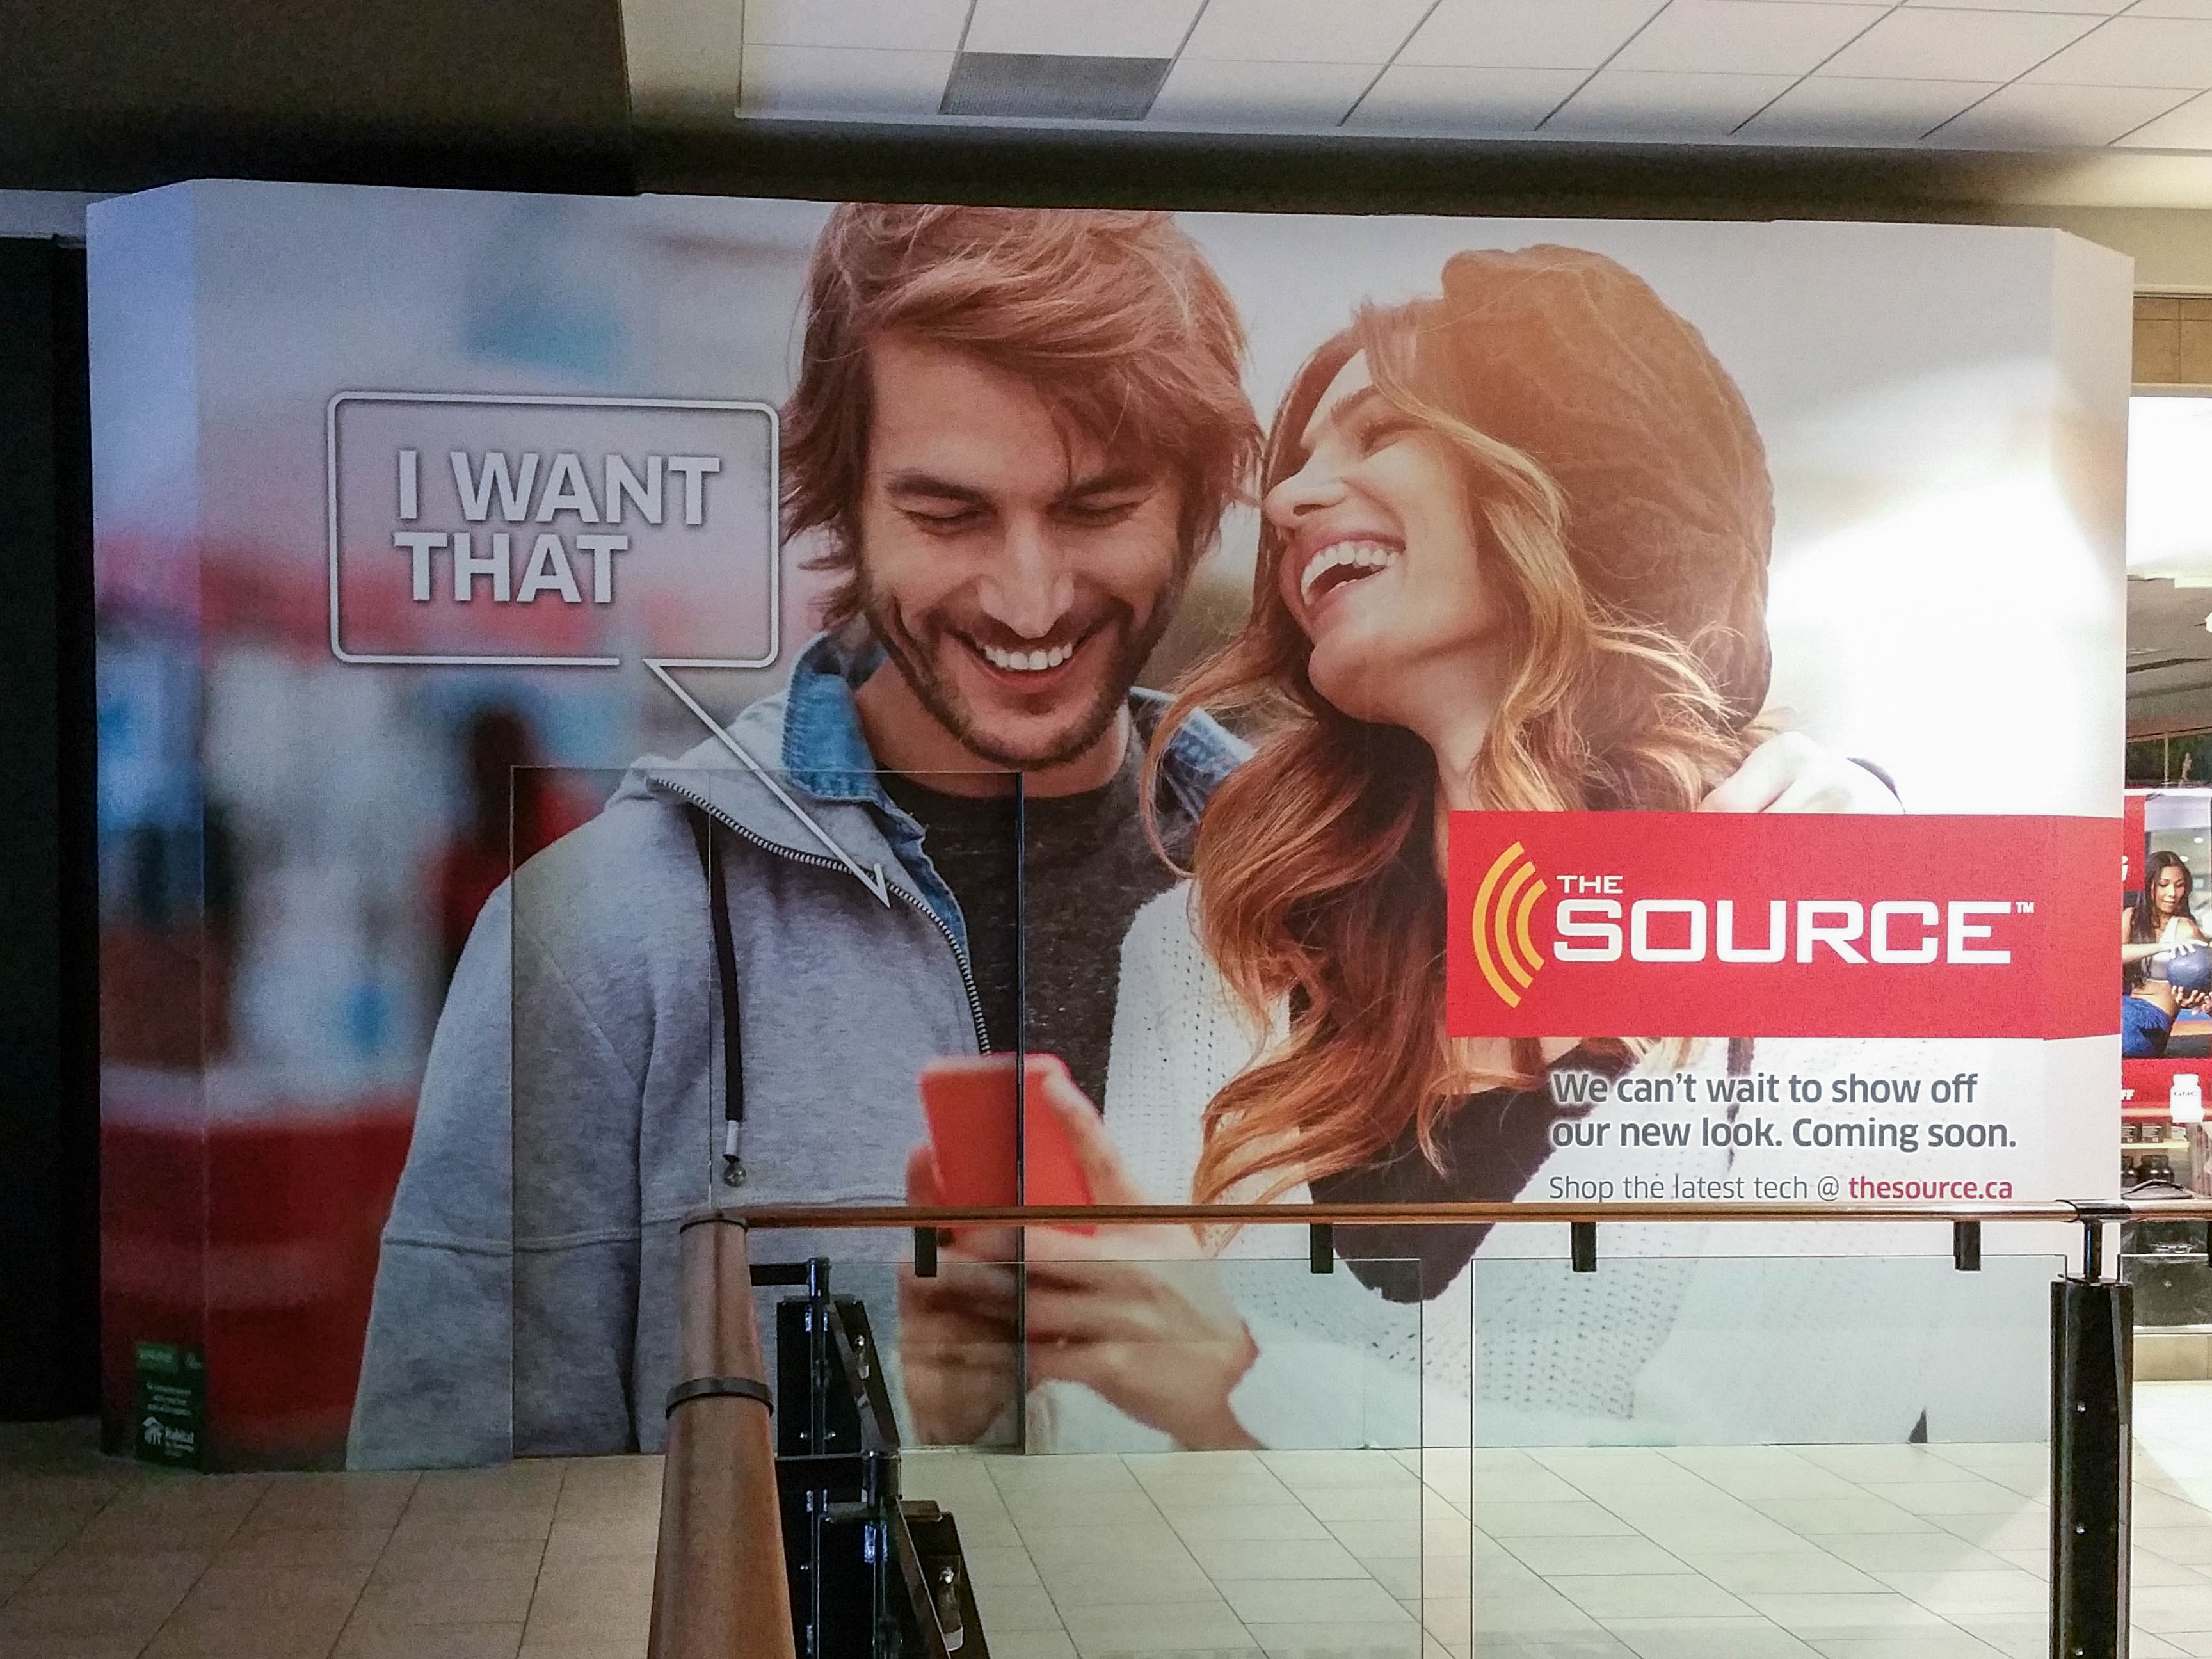 The Source hoarding wrap.